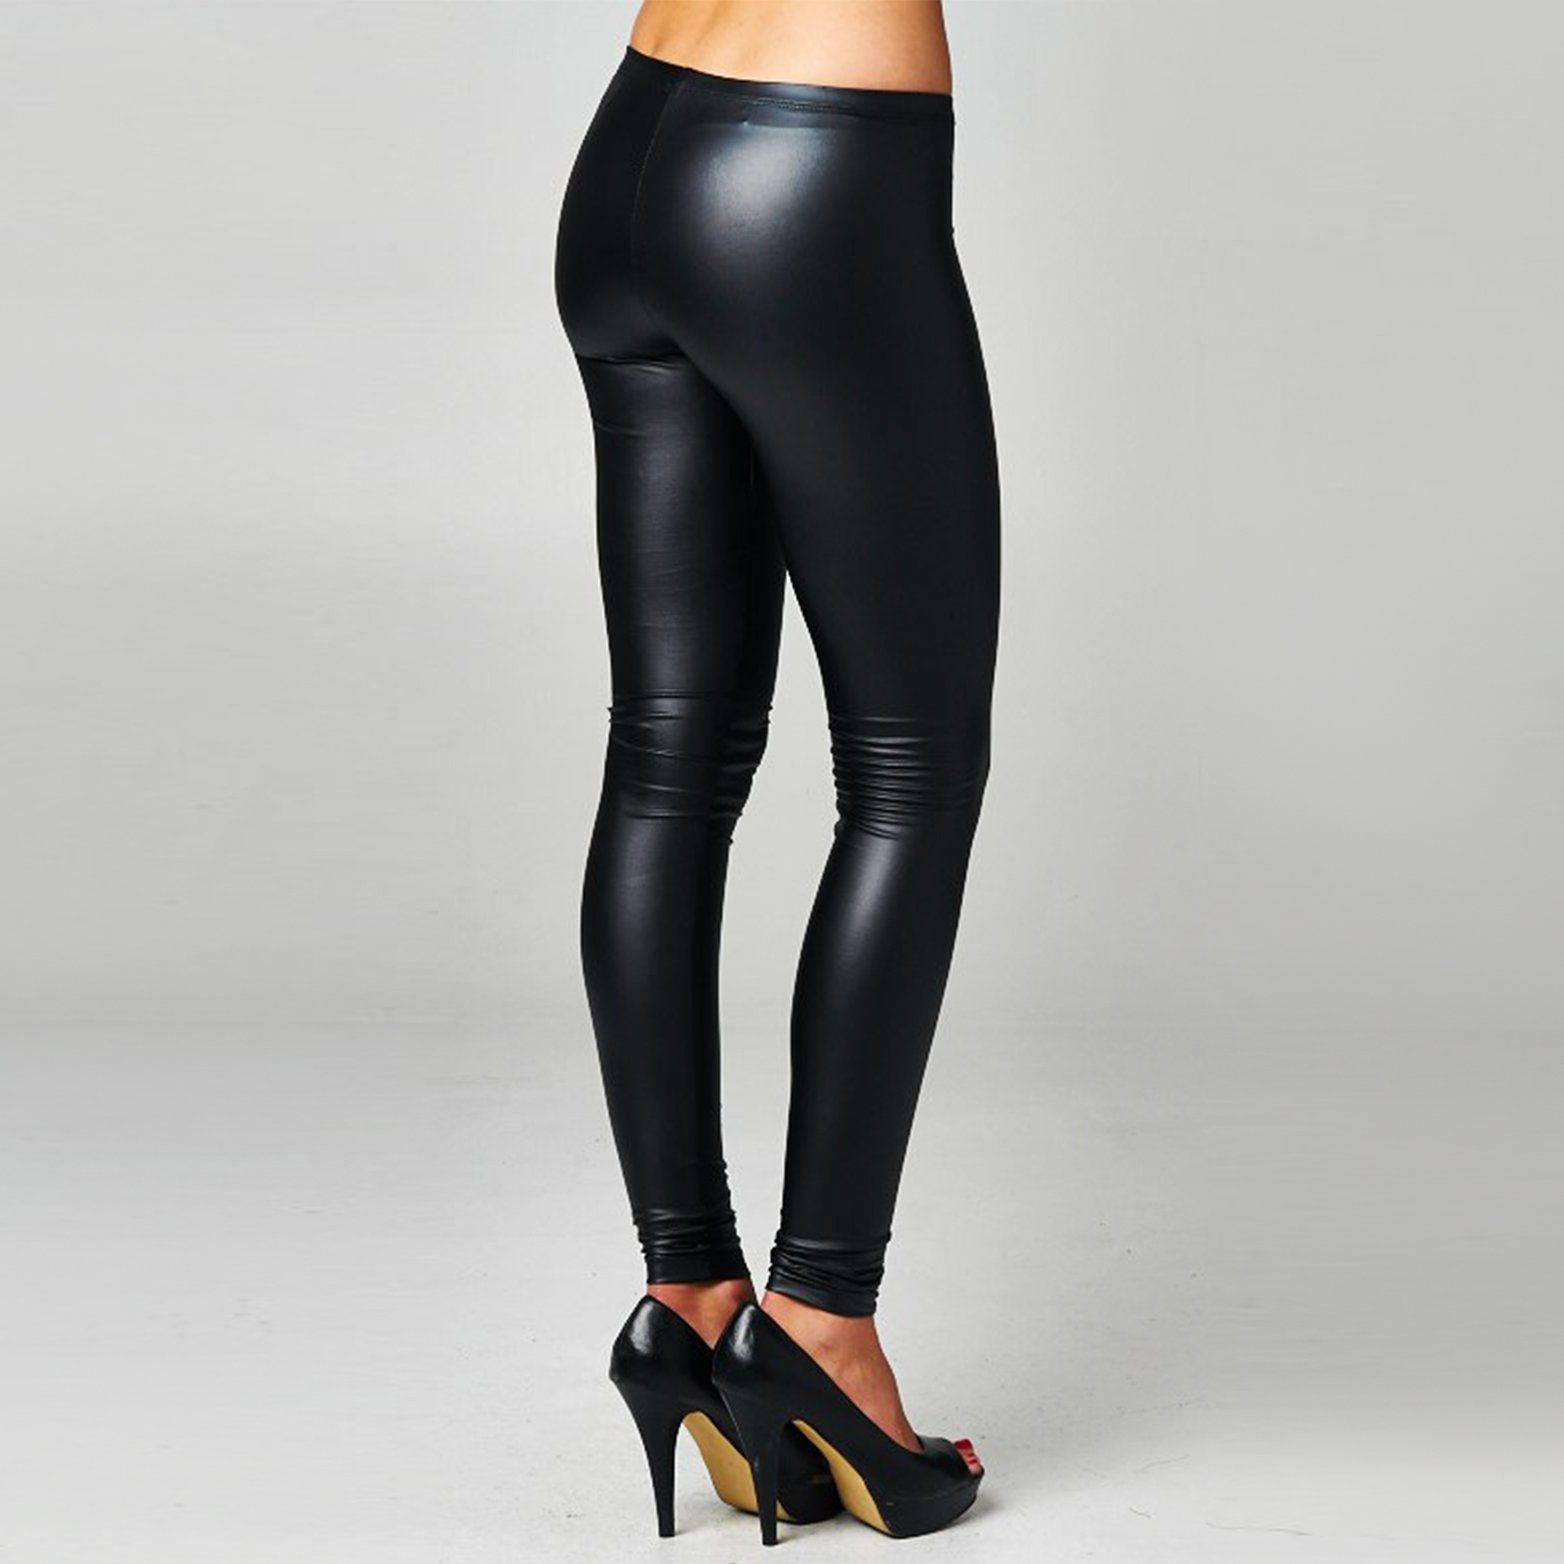 3f6eb18546717 Extra soft, retro-stylish vibes in faux leather leggings. Perfect for  pairing with